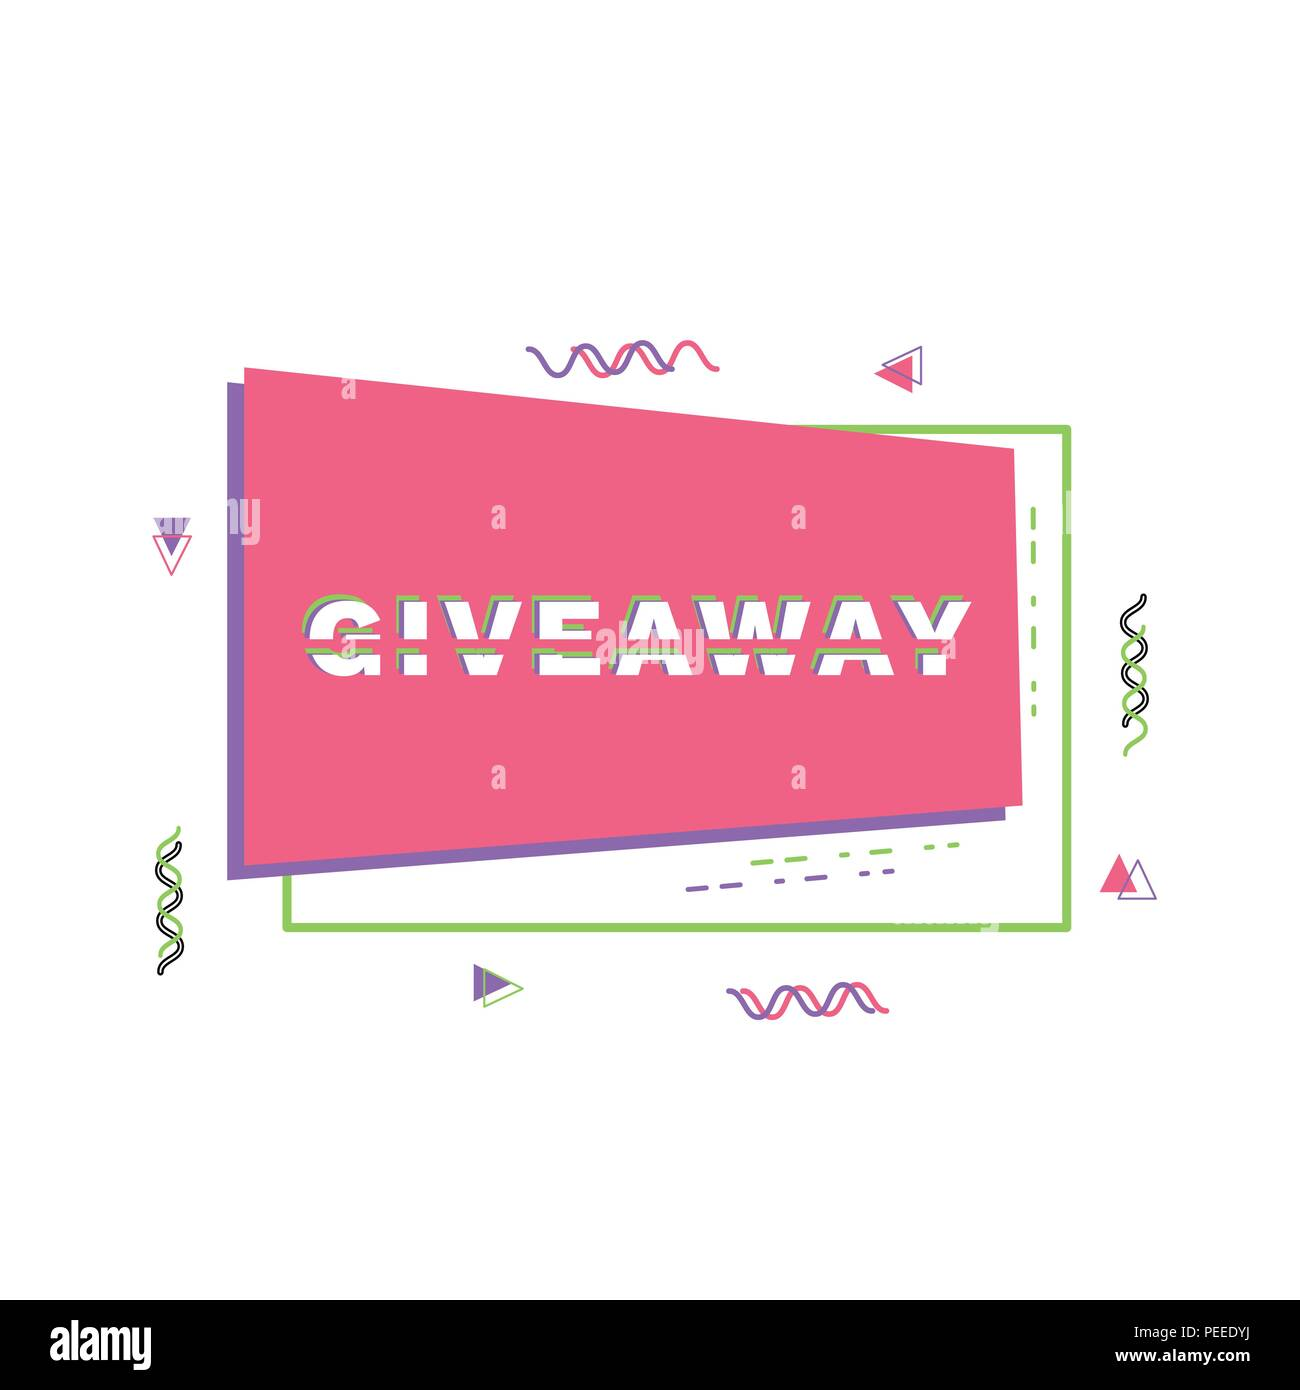 giveaway horizontal banner with frame sliced text effect memphis